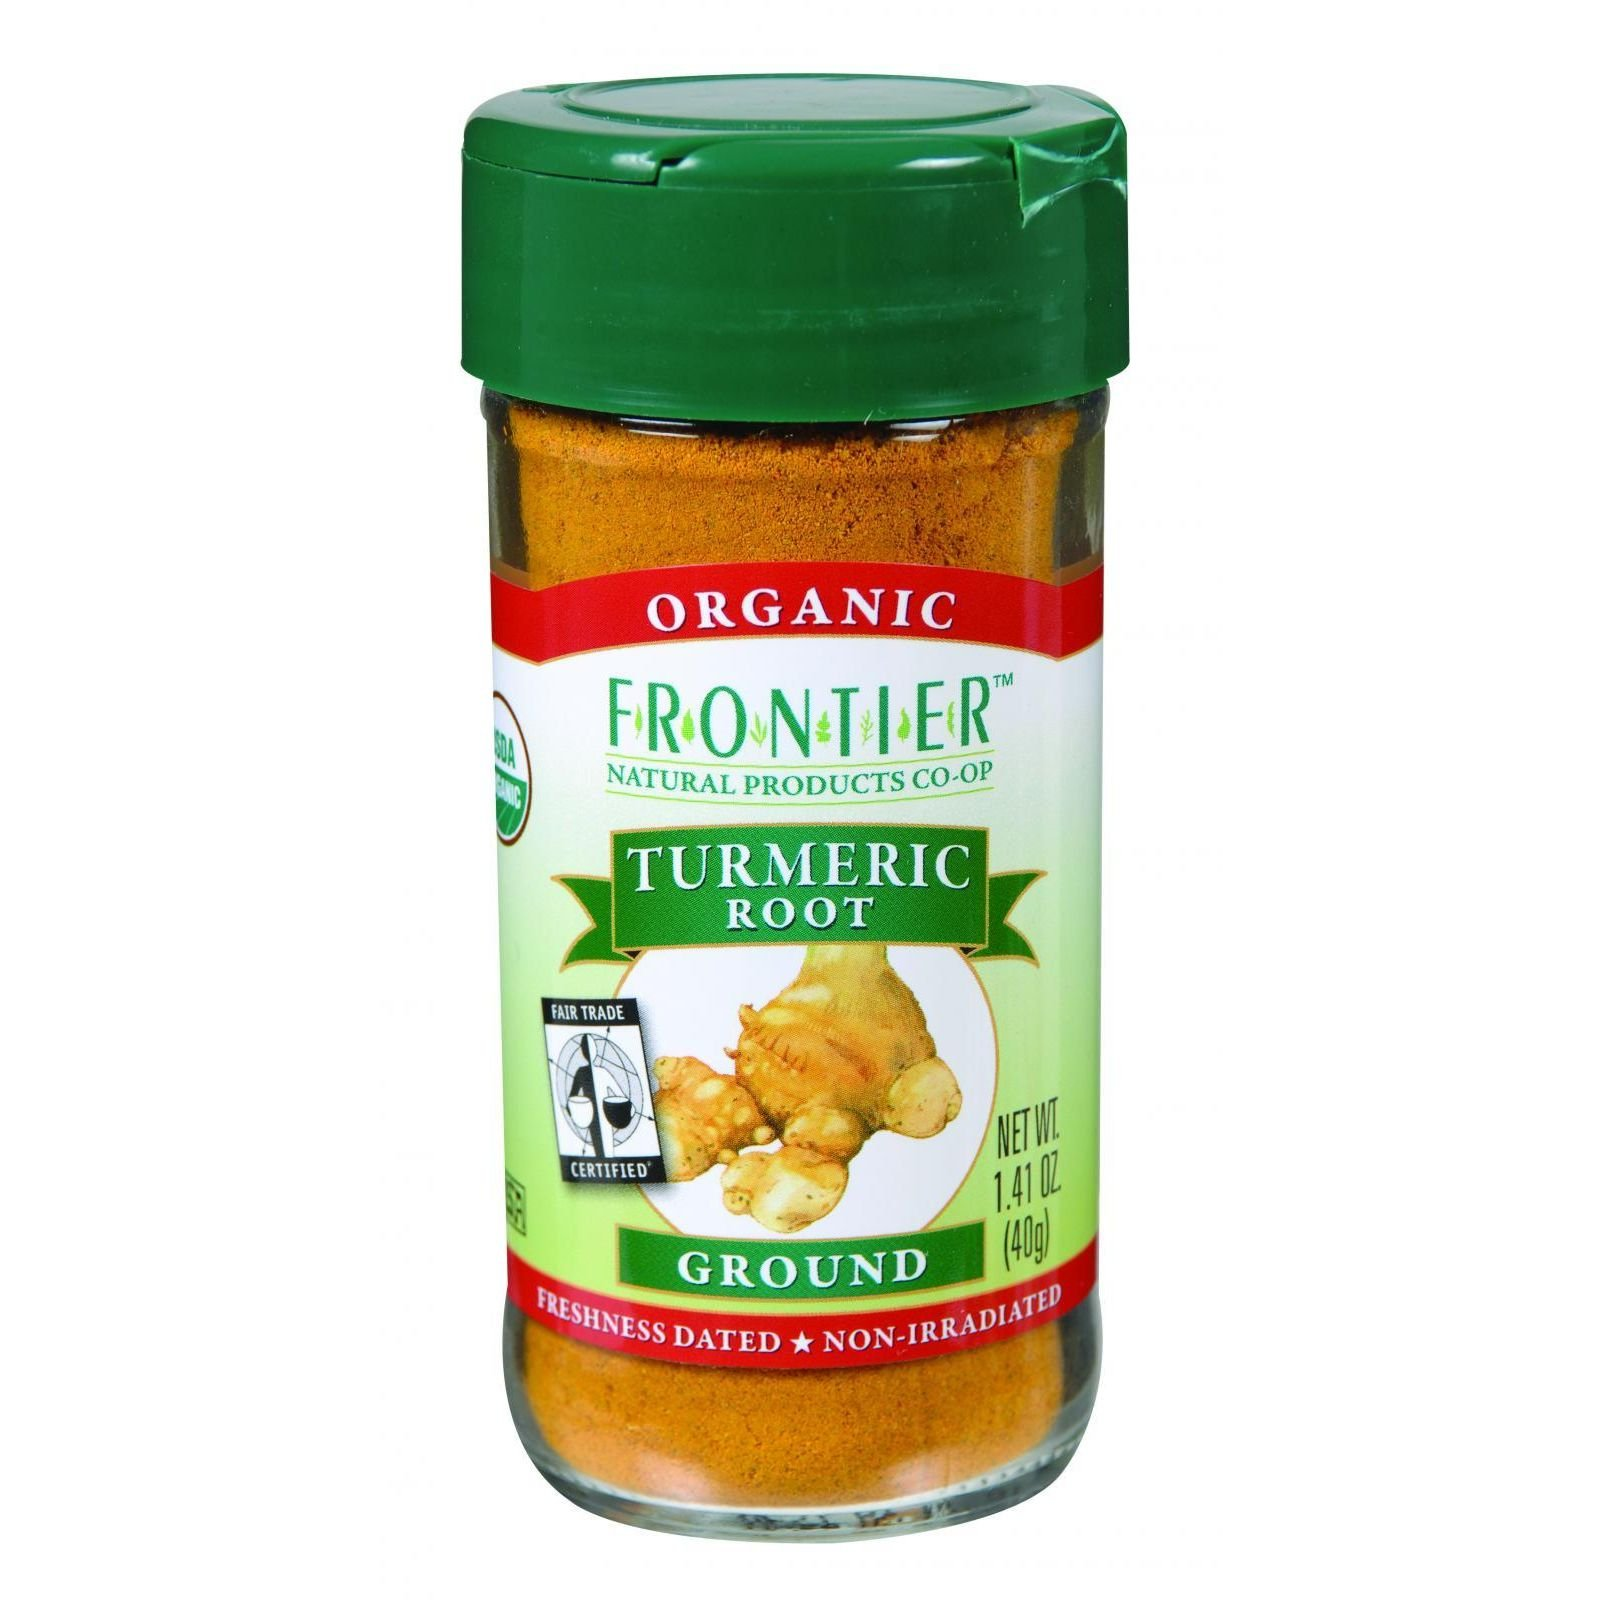 Frontier Natural Products Tumeric Root, Og, Ground, Ft, 1.41-Ounce